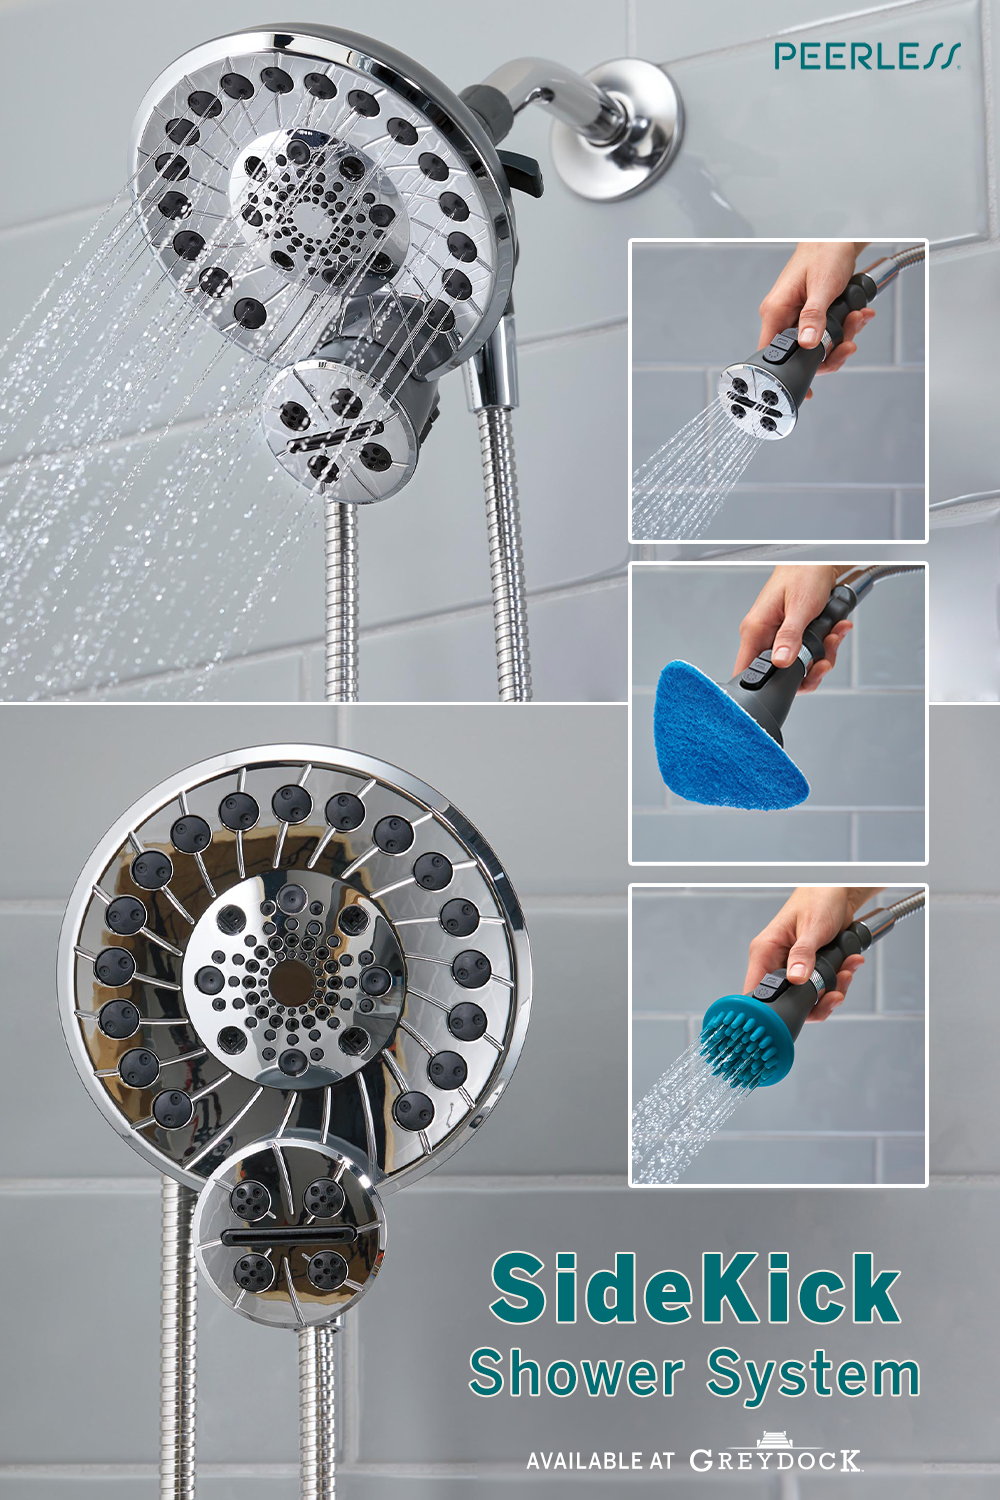 Chrome Peerless 2-in-1 Shower System 5-Spray Dual Showerhead and Handheld Wand